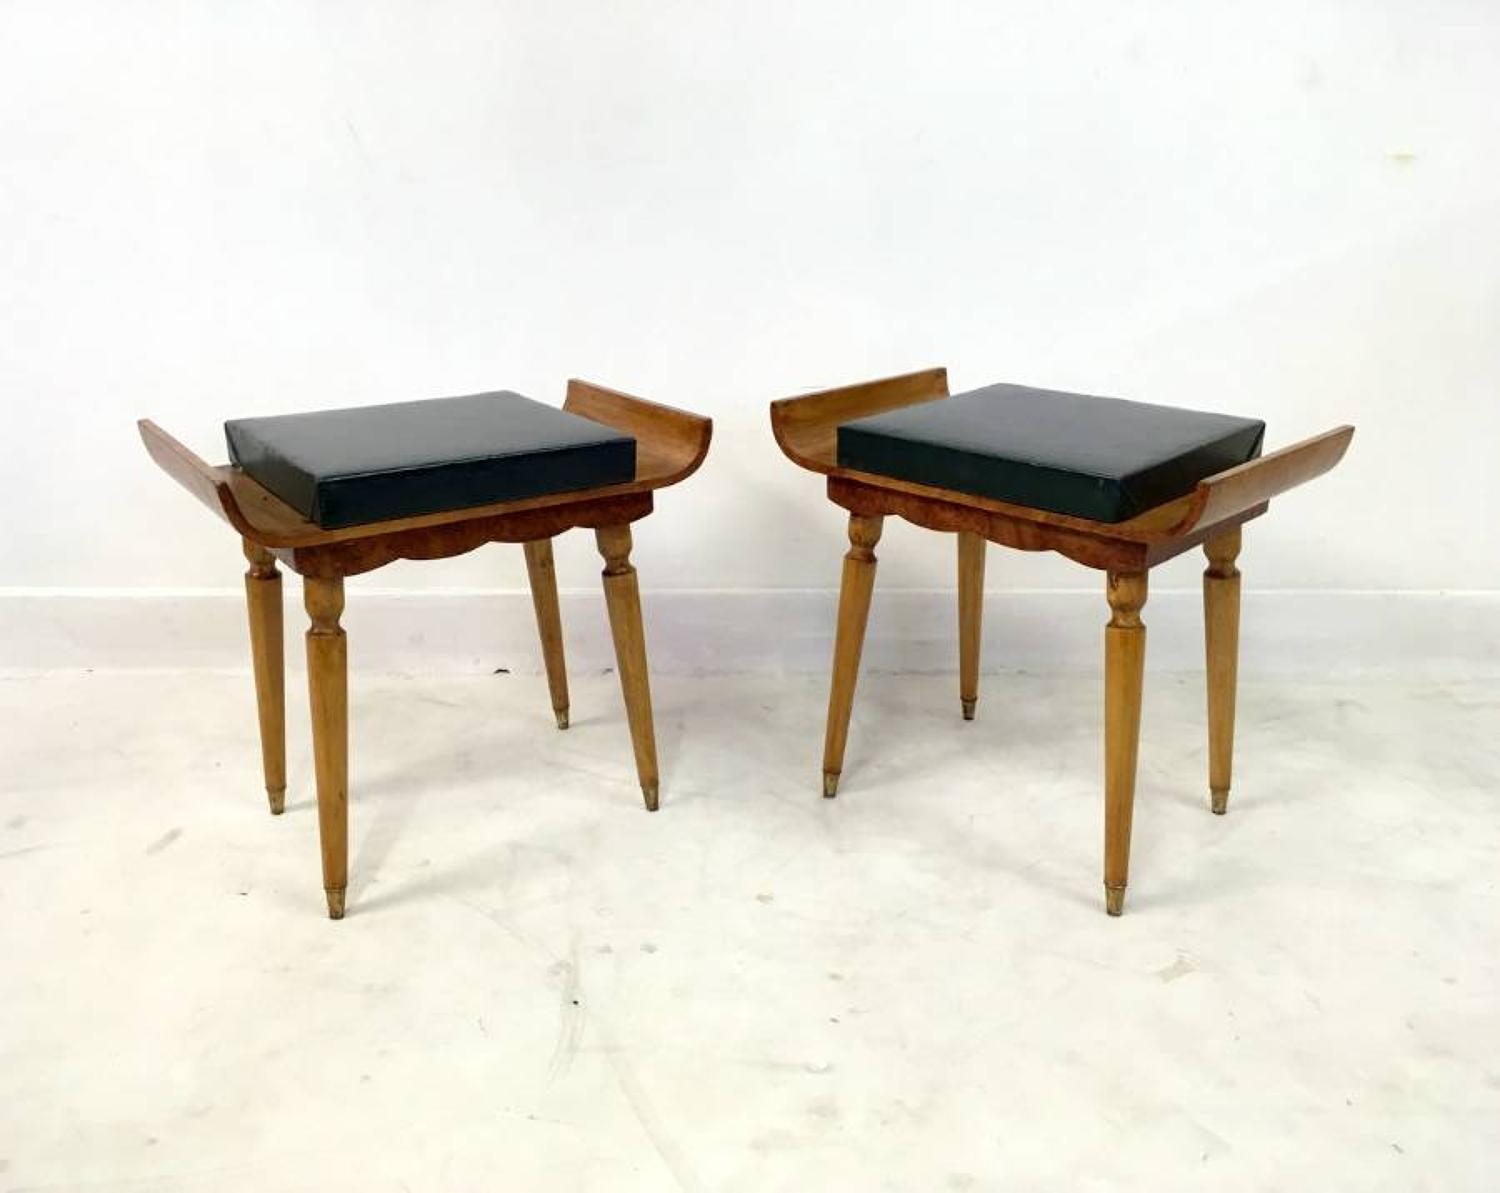 A pair of 1950s Italian stools